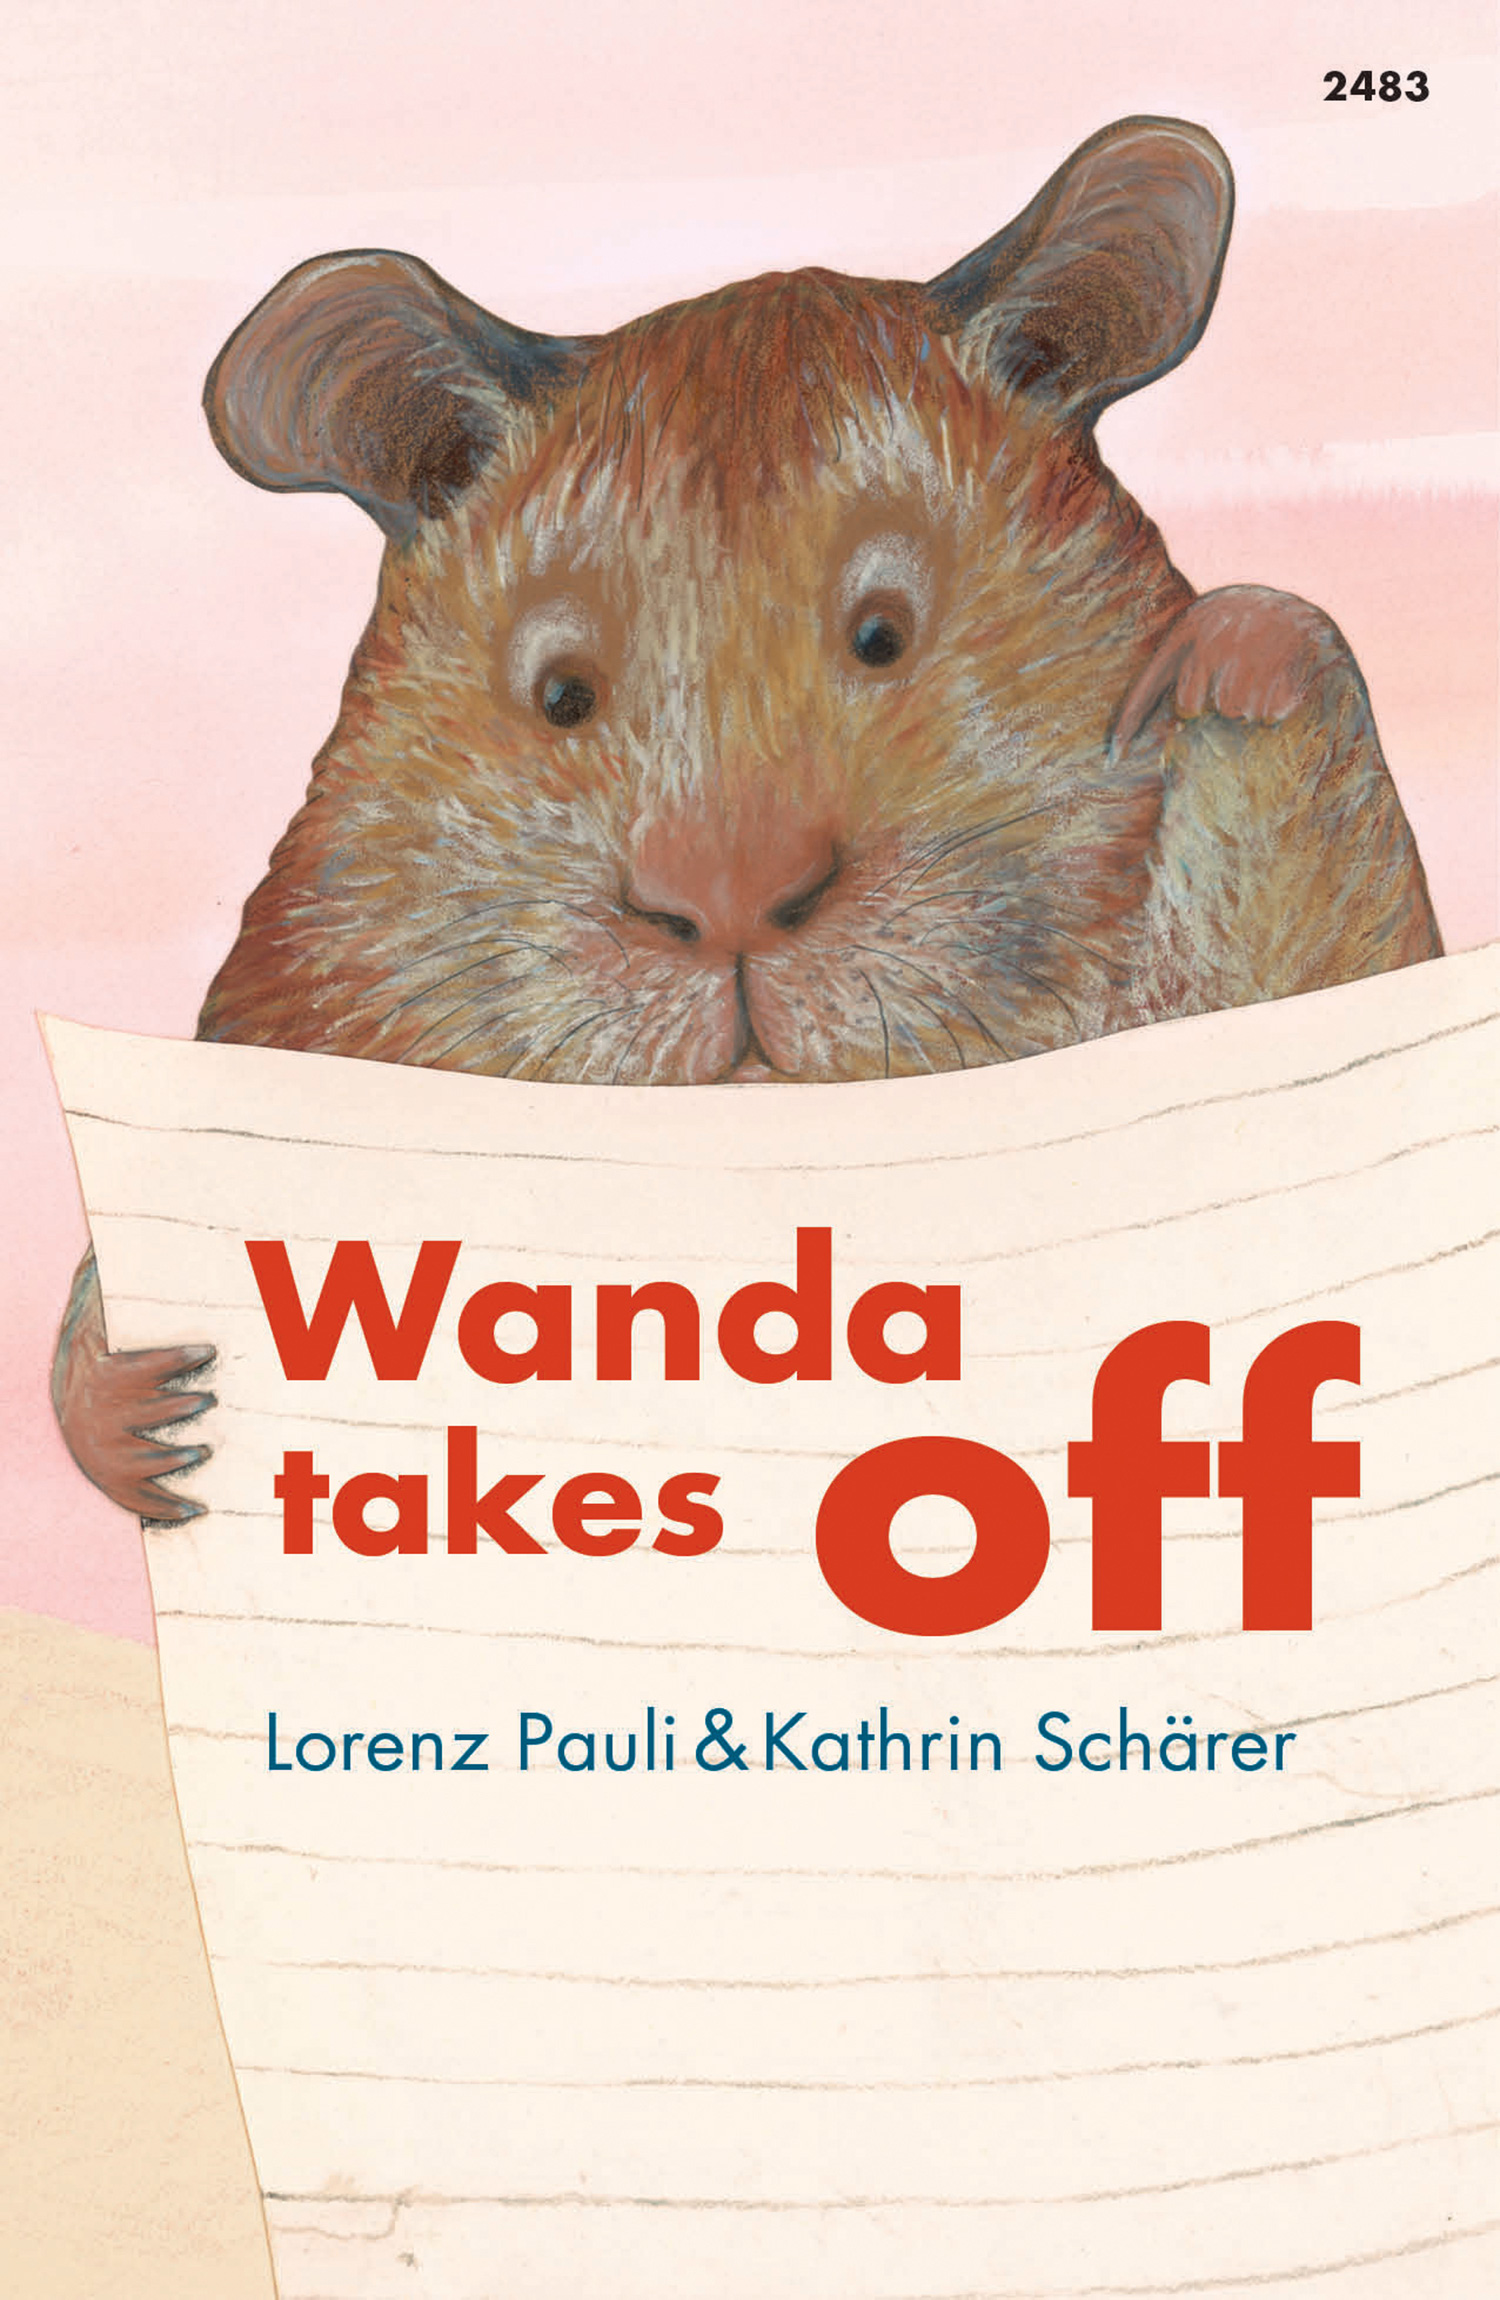 Preview image for LOM object Wanda takes off